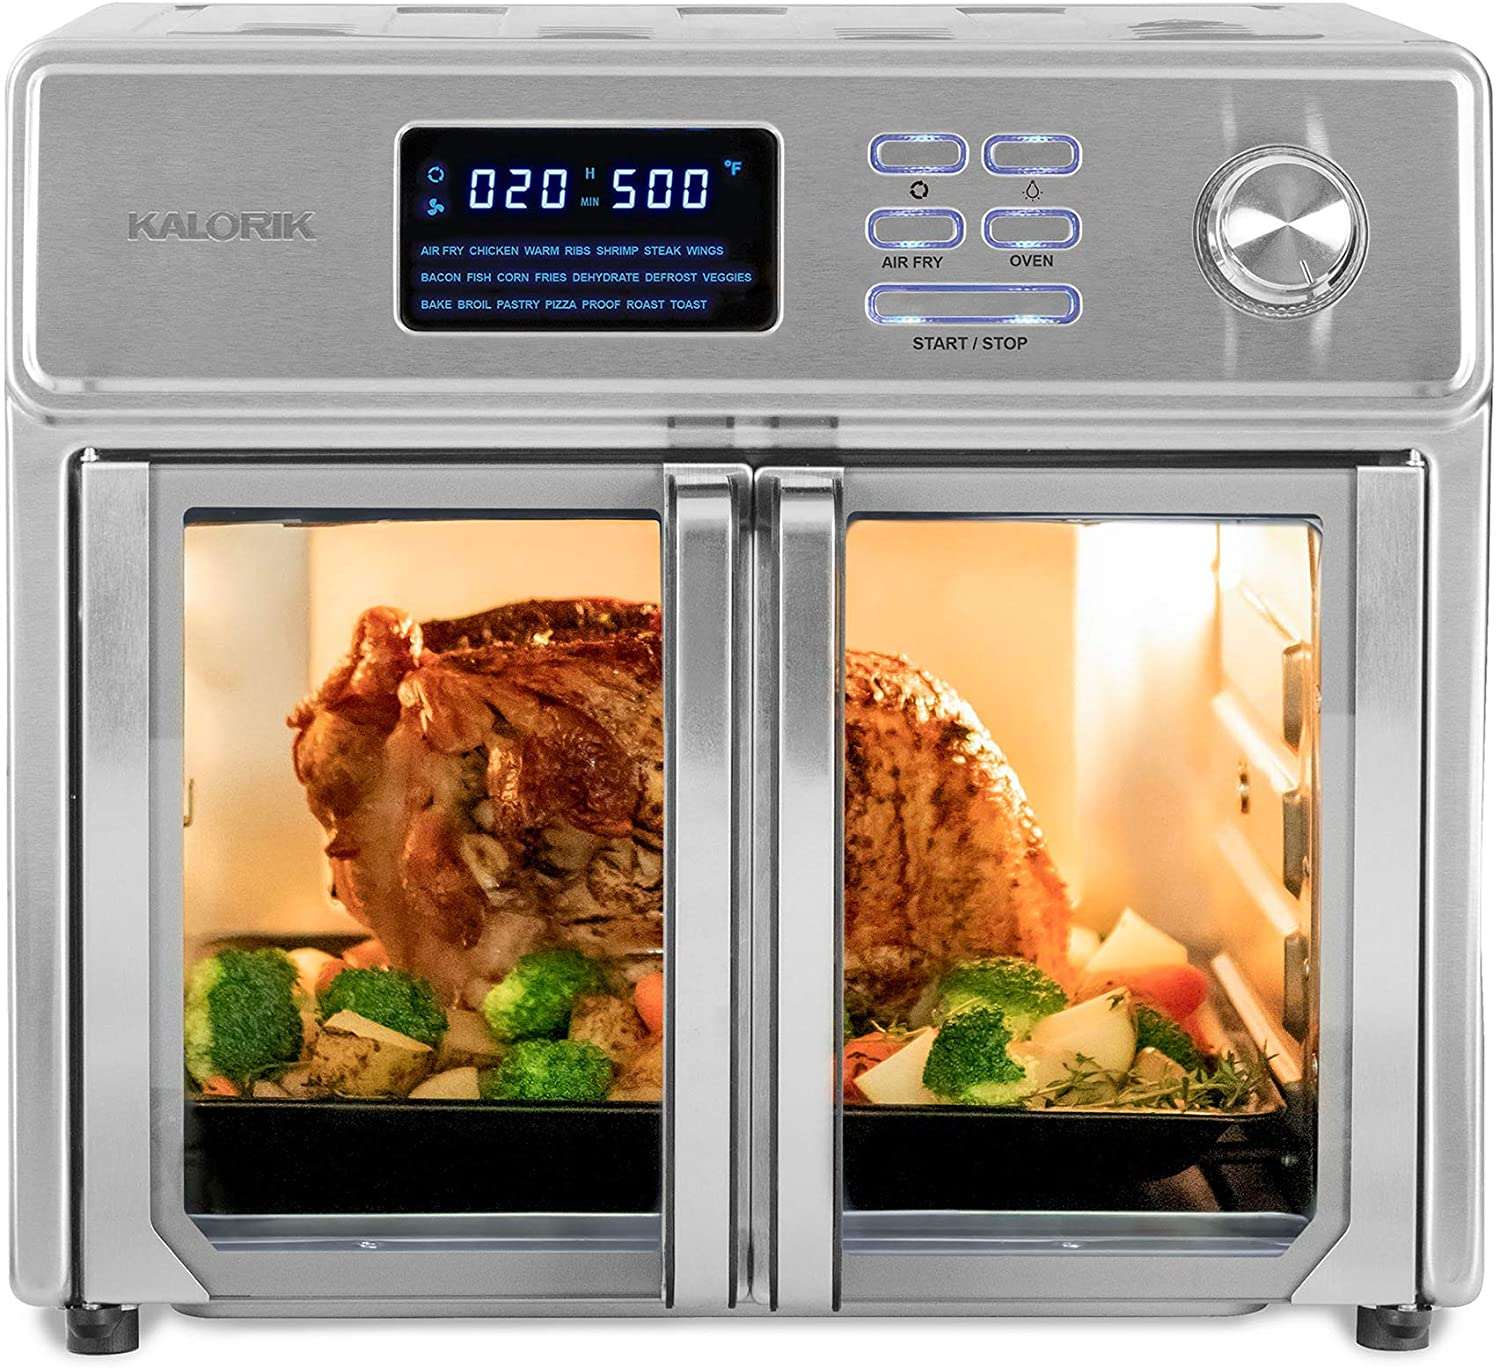 kalorik-26-qt-digital-maxx-air-fryer-oven-2021-3-14